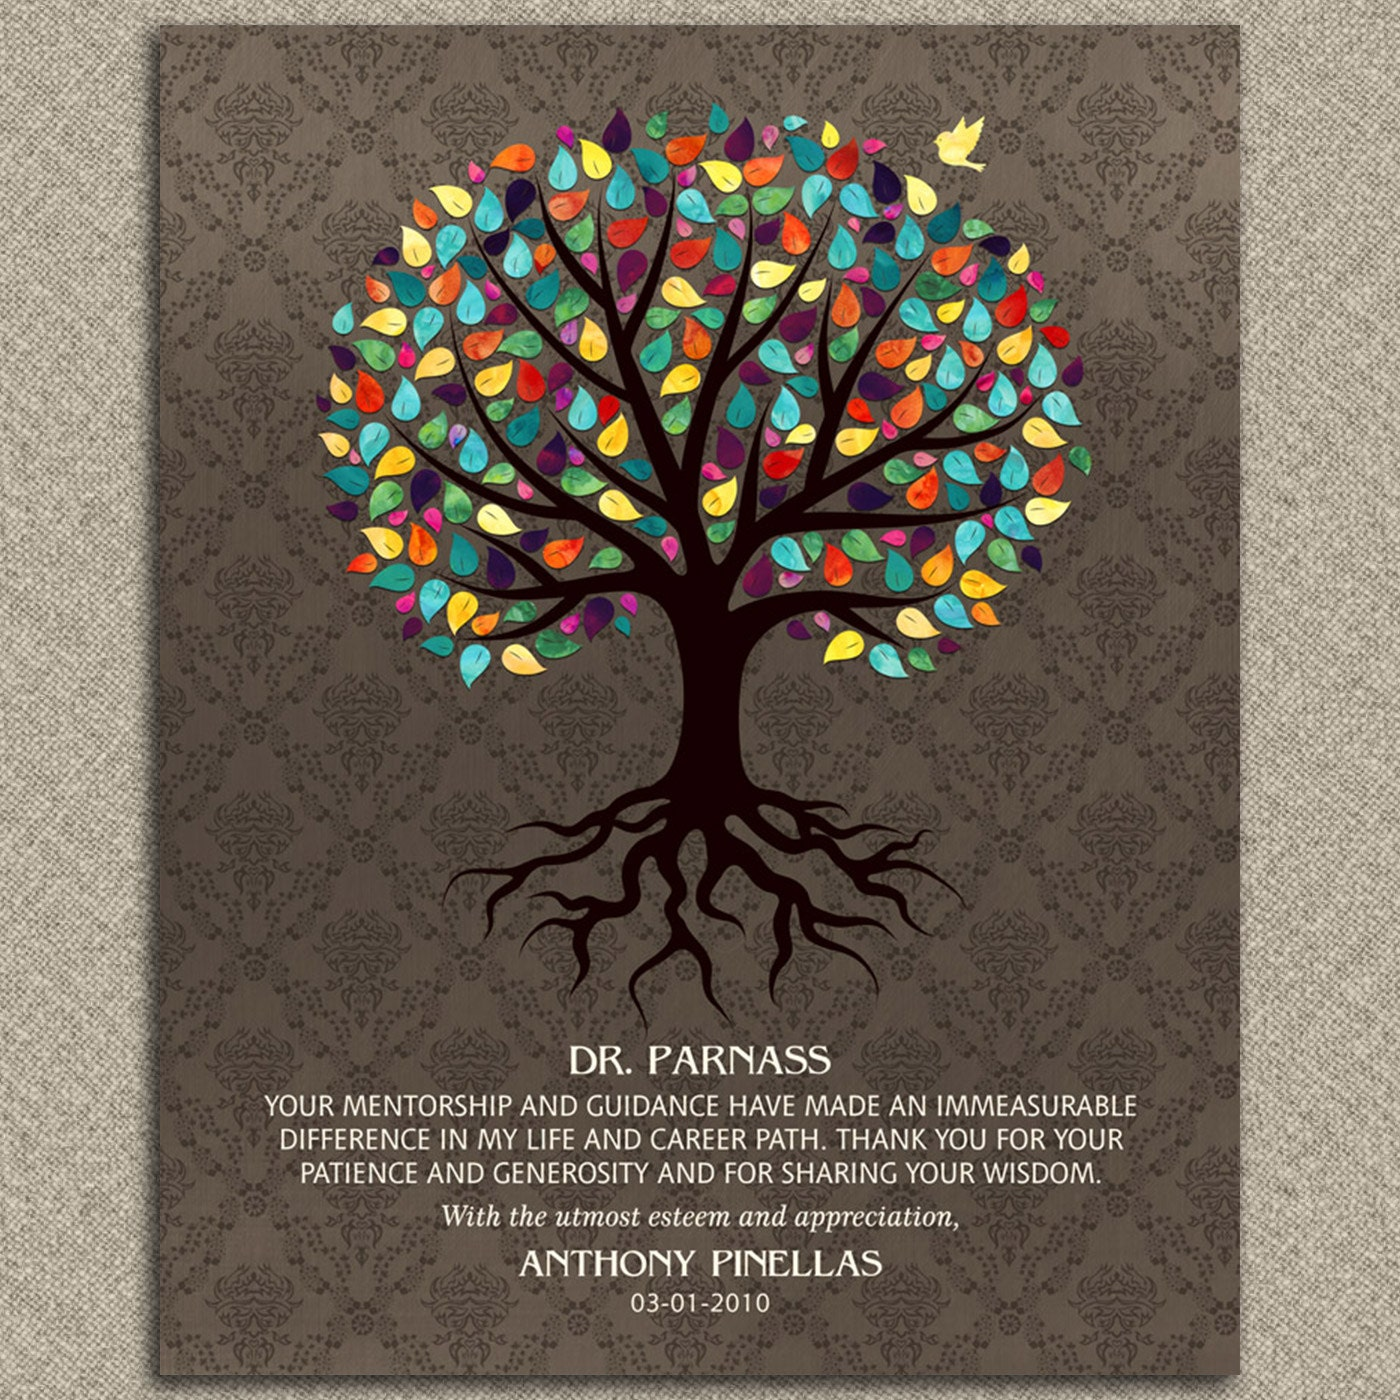 To Be Your Life And Gifts: Gift For Mentor Doctor Colorful Watercolor Tree Damask Gift